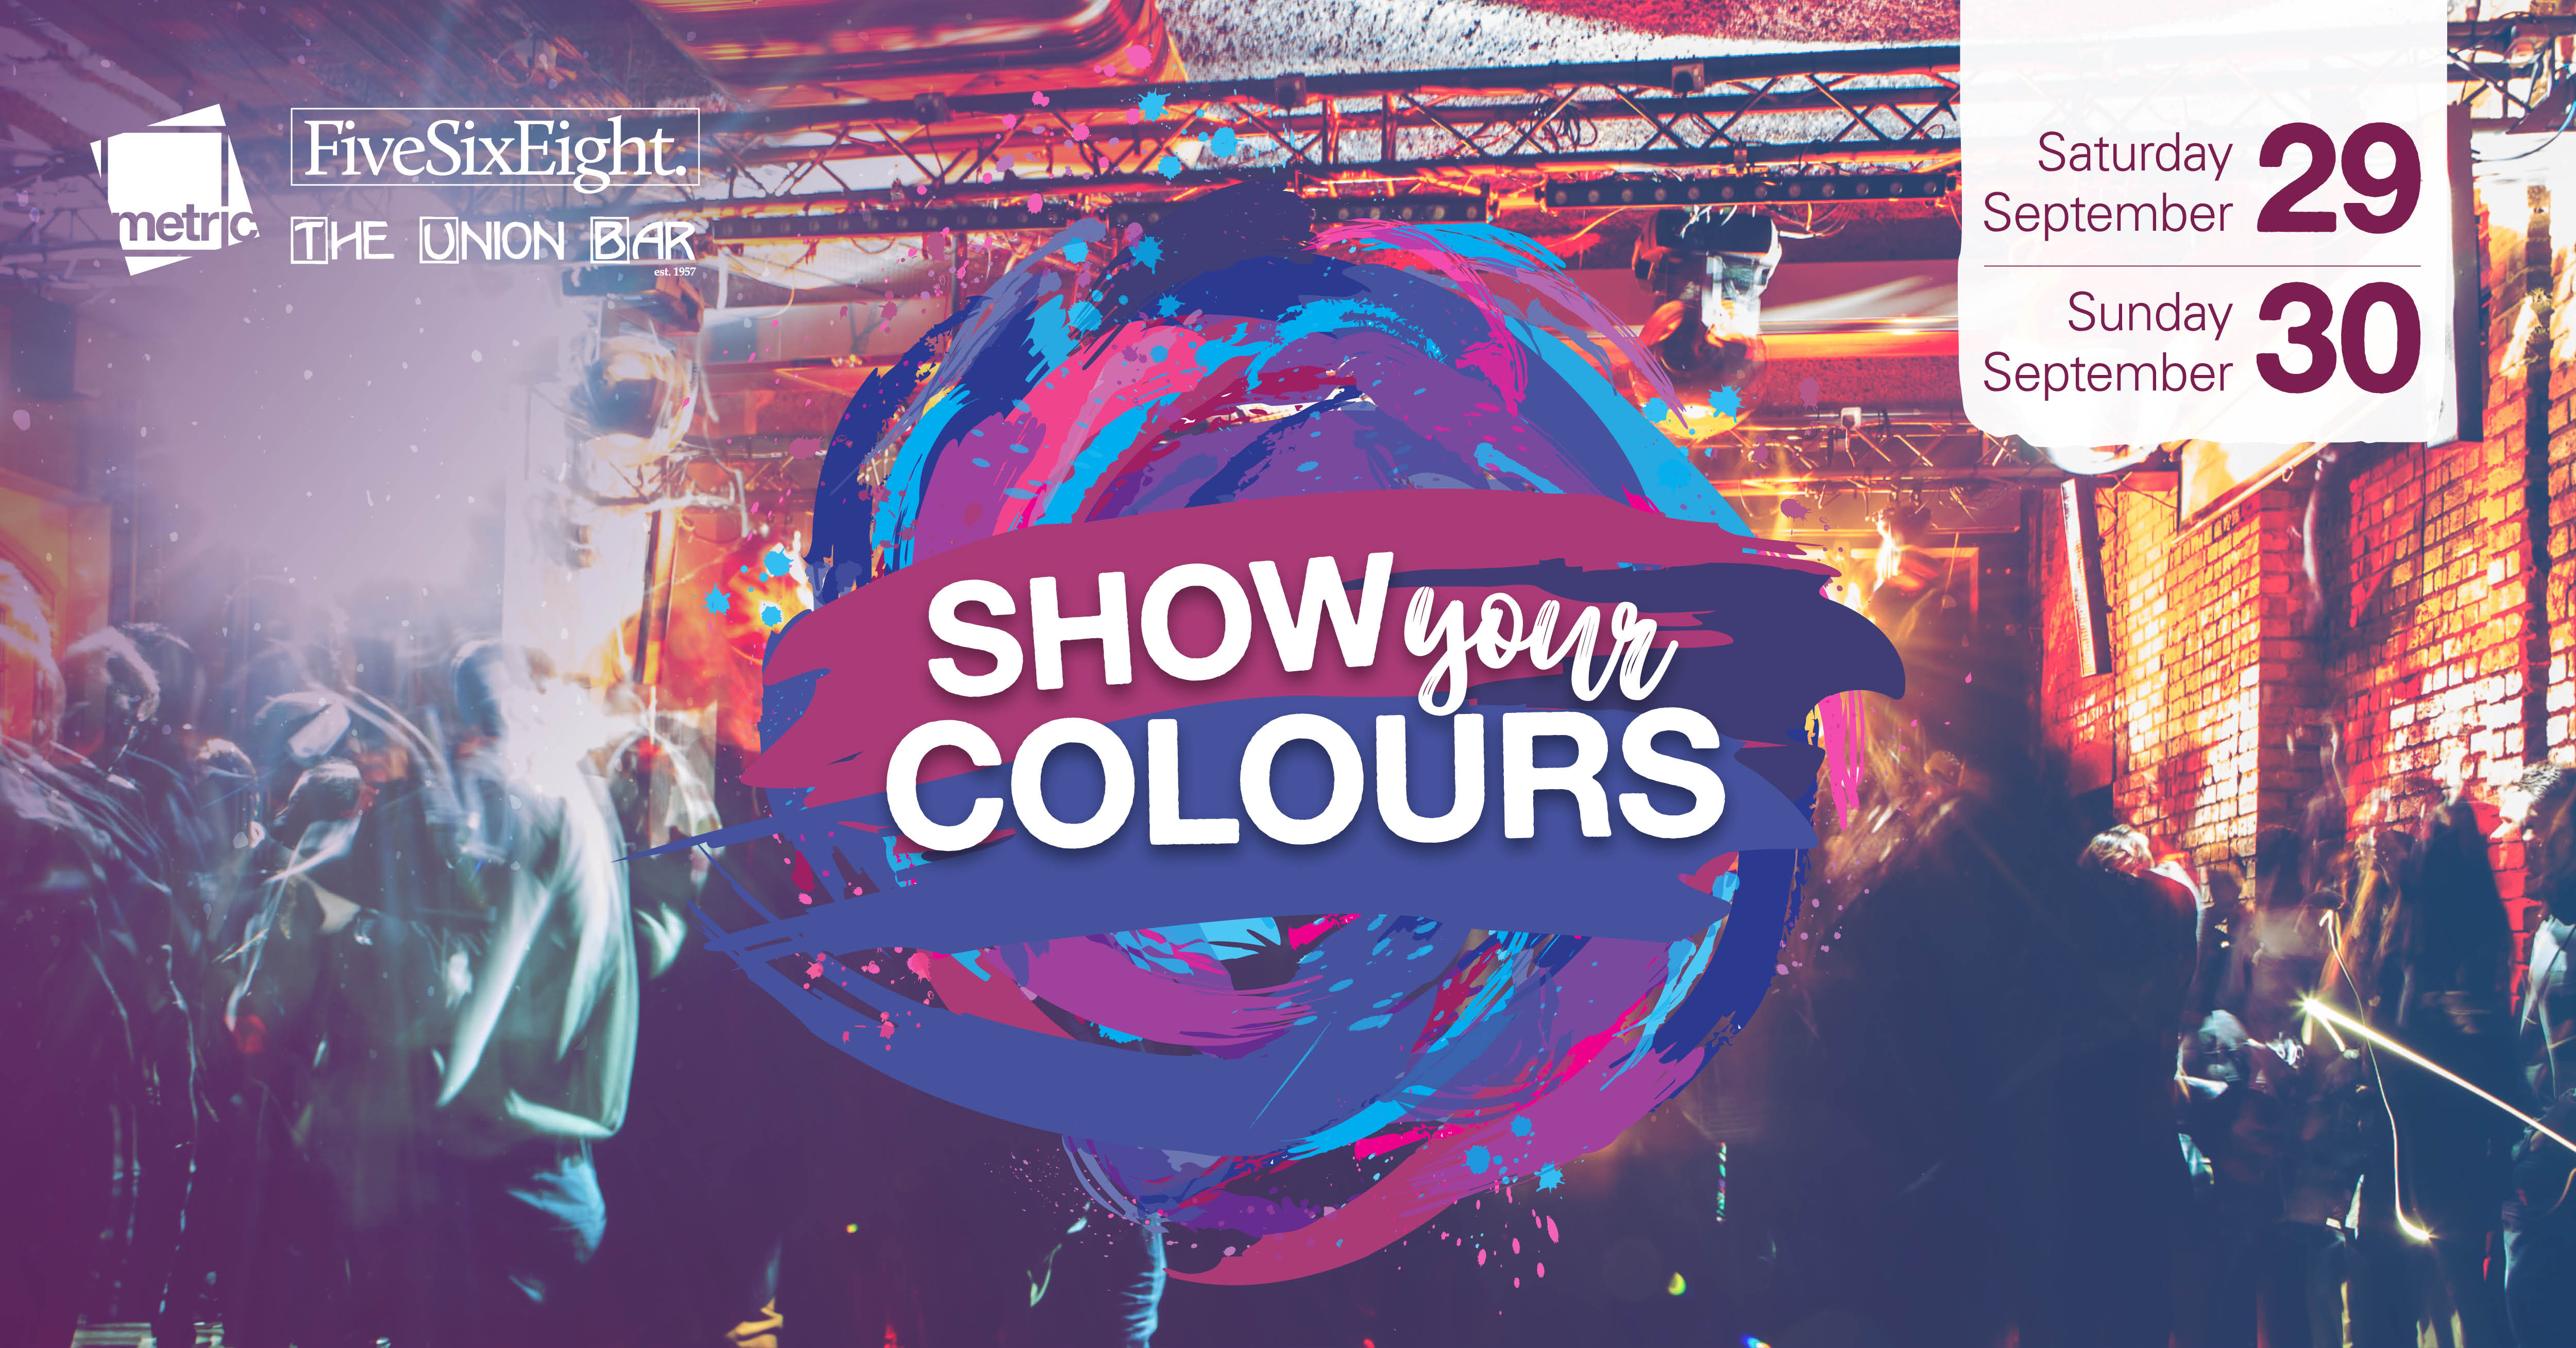 Show Your Colours Saturday 29 and Sunday 30 October 2018